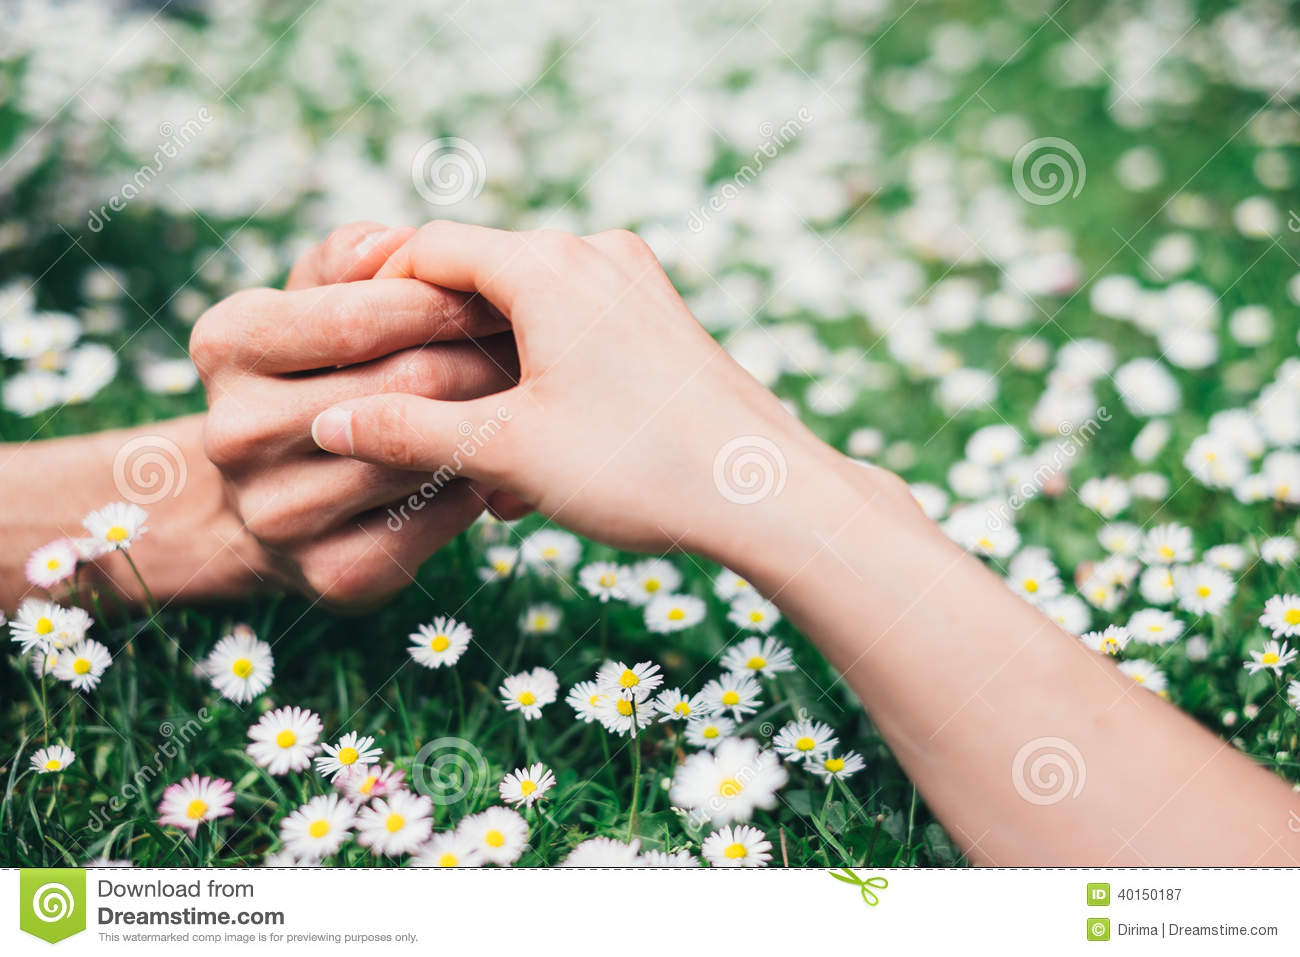 15 708 Lovers Holding Hands Photos Free Royalty Free Stock Photos From Dreamstime